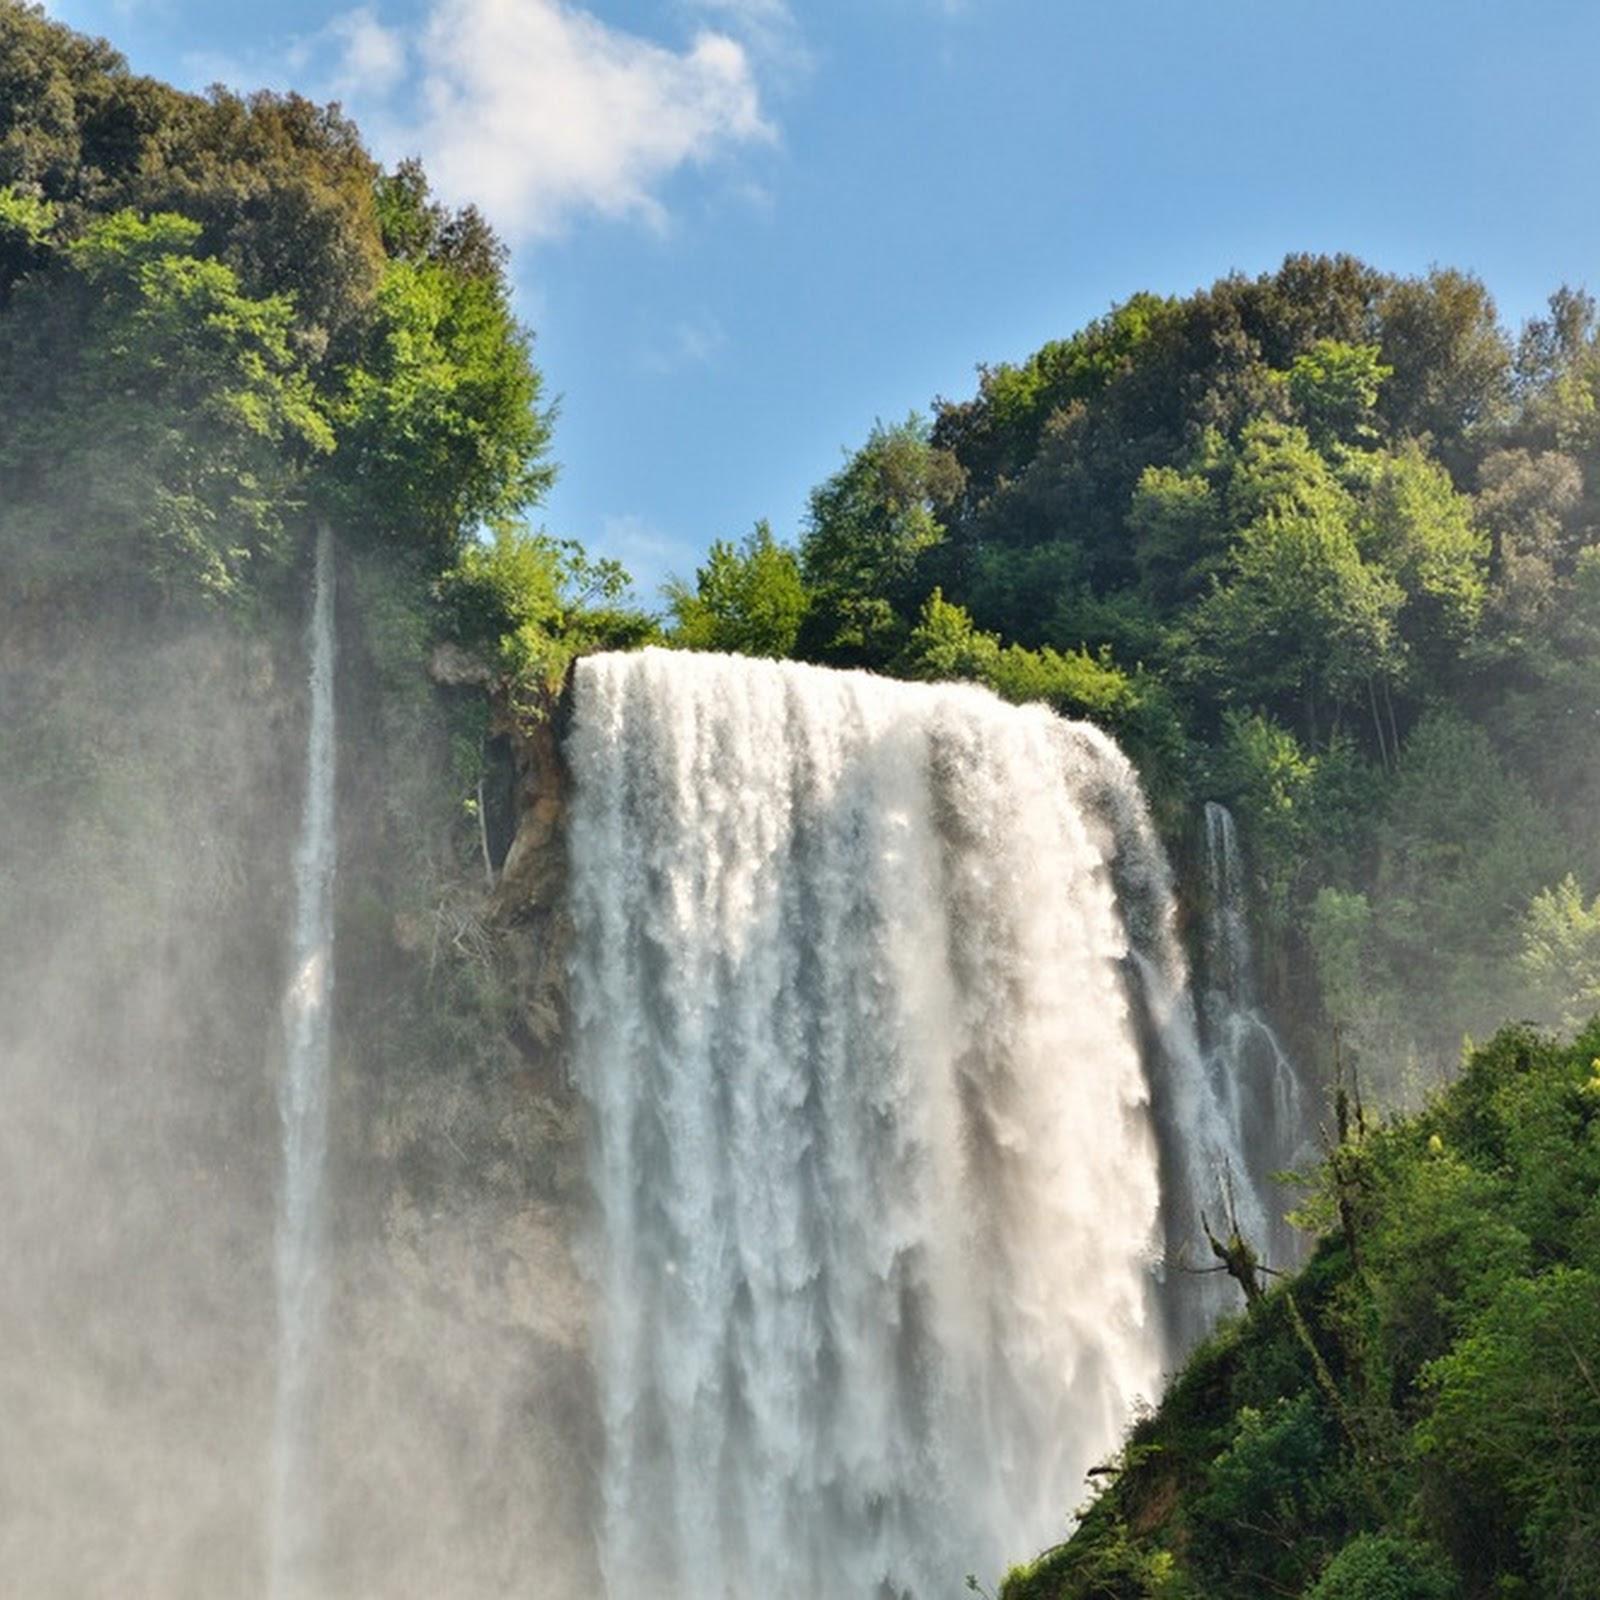 Cascata delle Marmore: A Man-Made Waterfalls Created by Ancient Romans